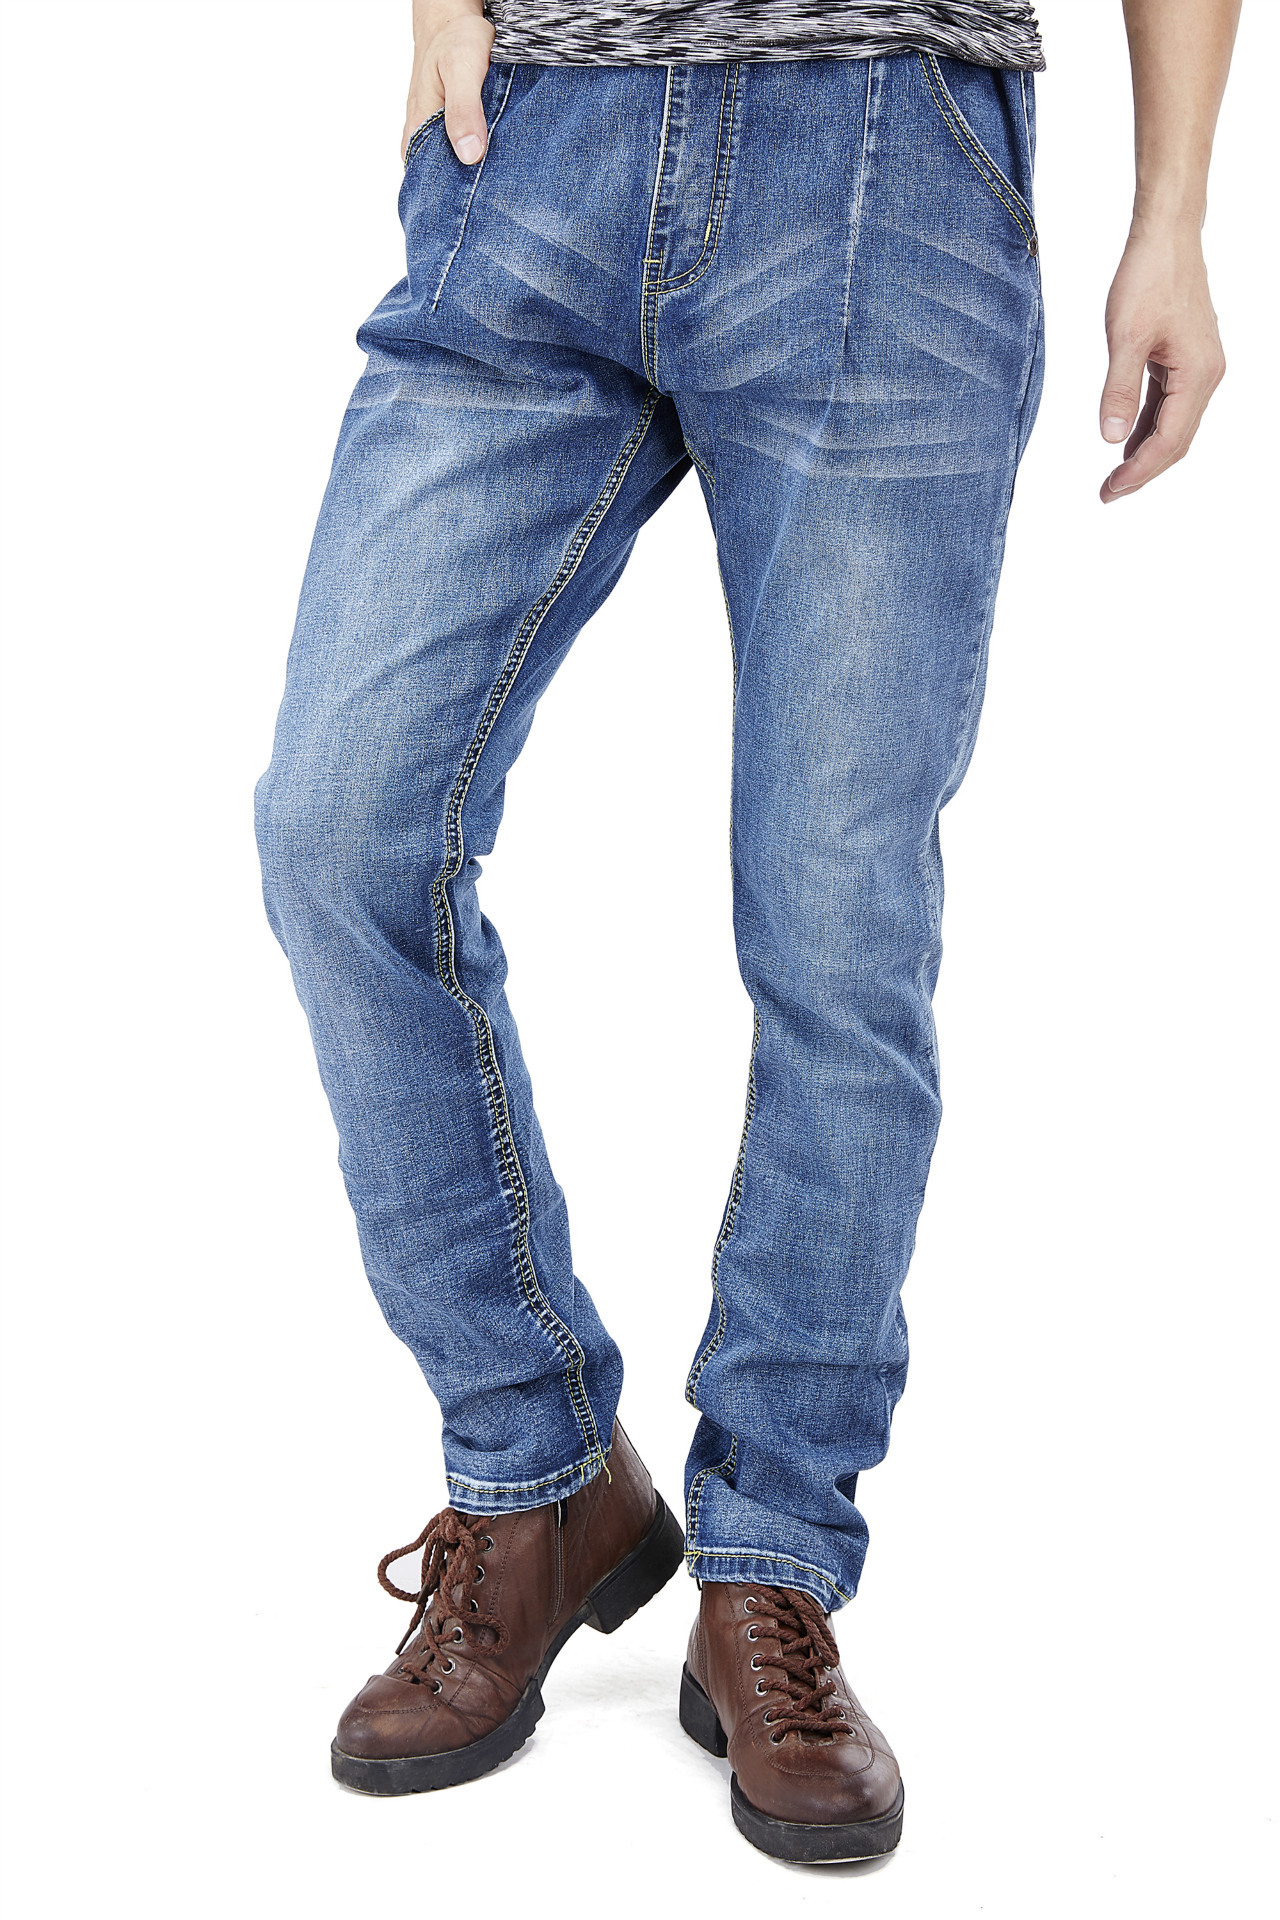 1932 # spring and summer mens light-colored jeans with slim elastic casual loose straight pants big yards